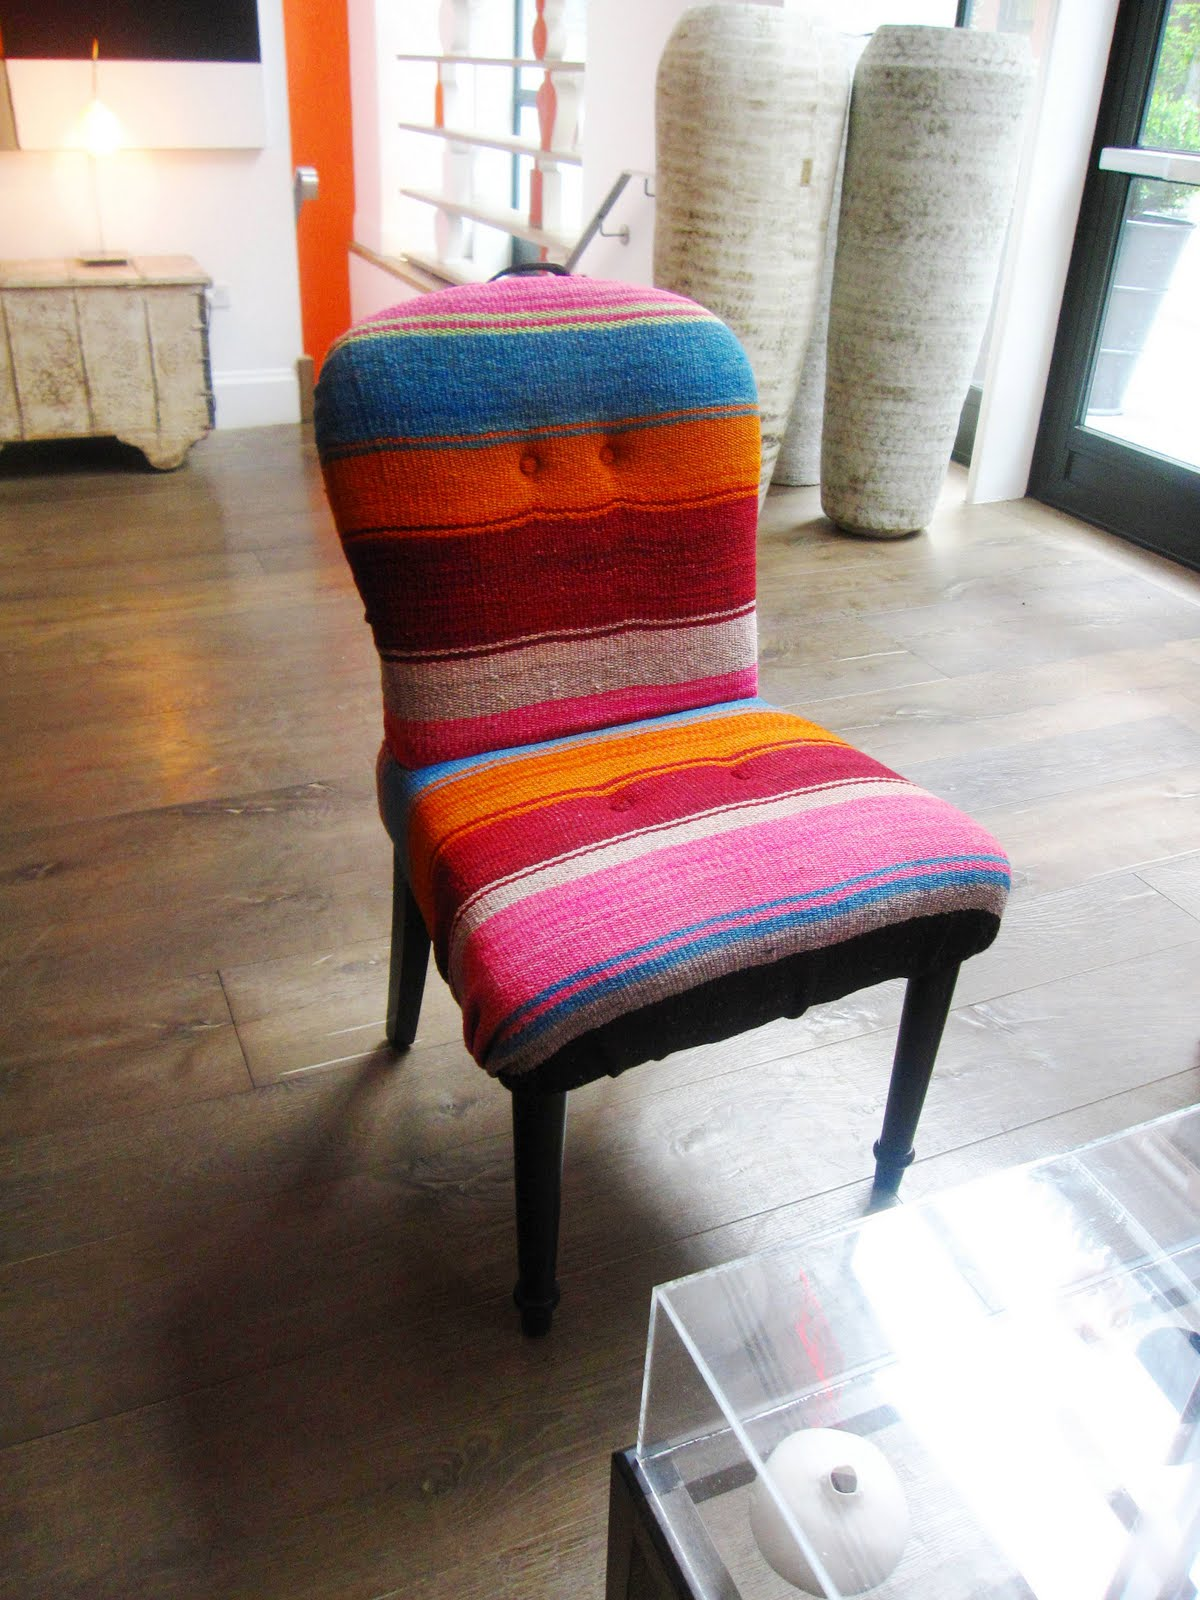 Design Idea A Colorful Mexican Blanket Covered Chair